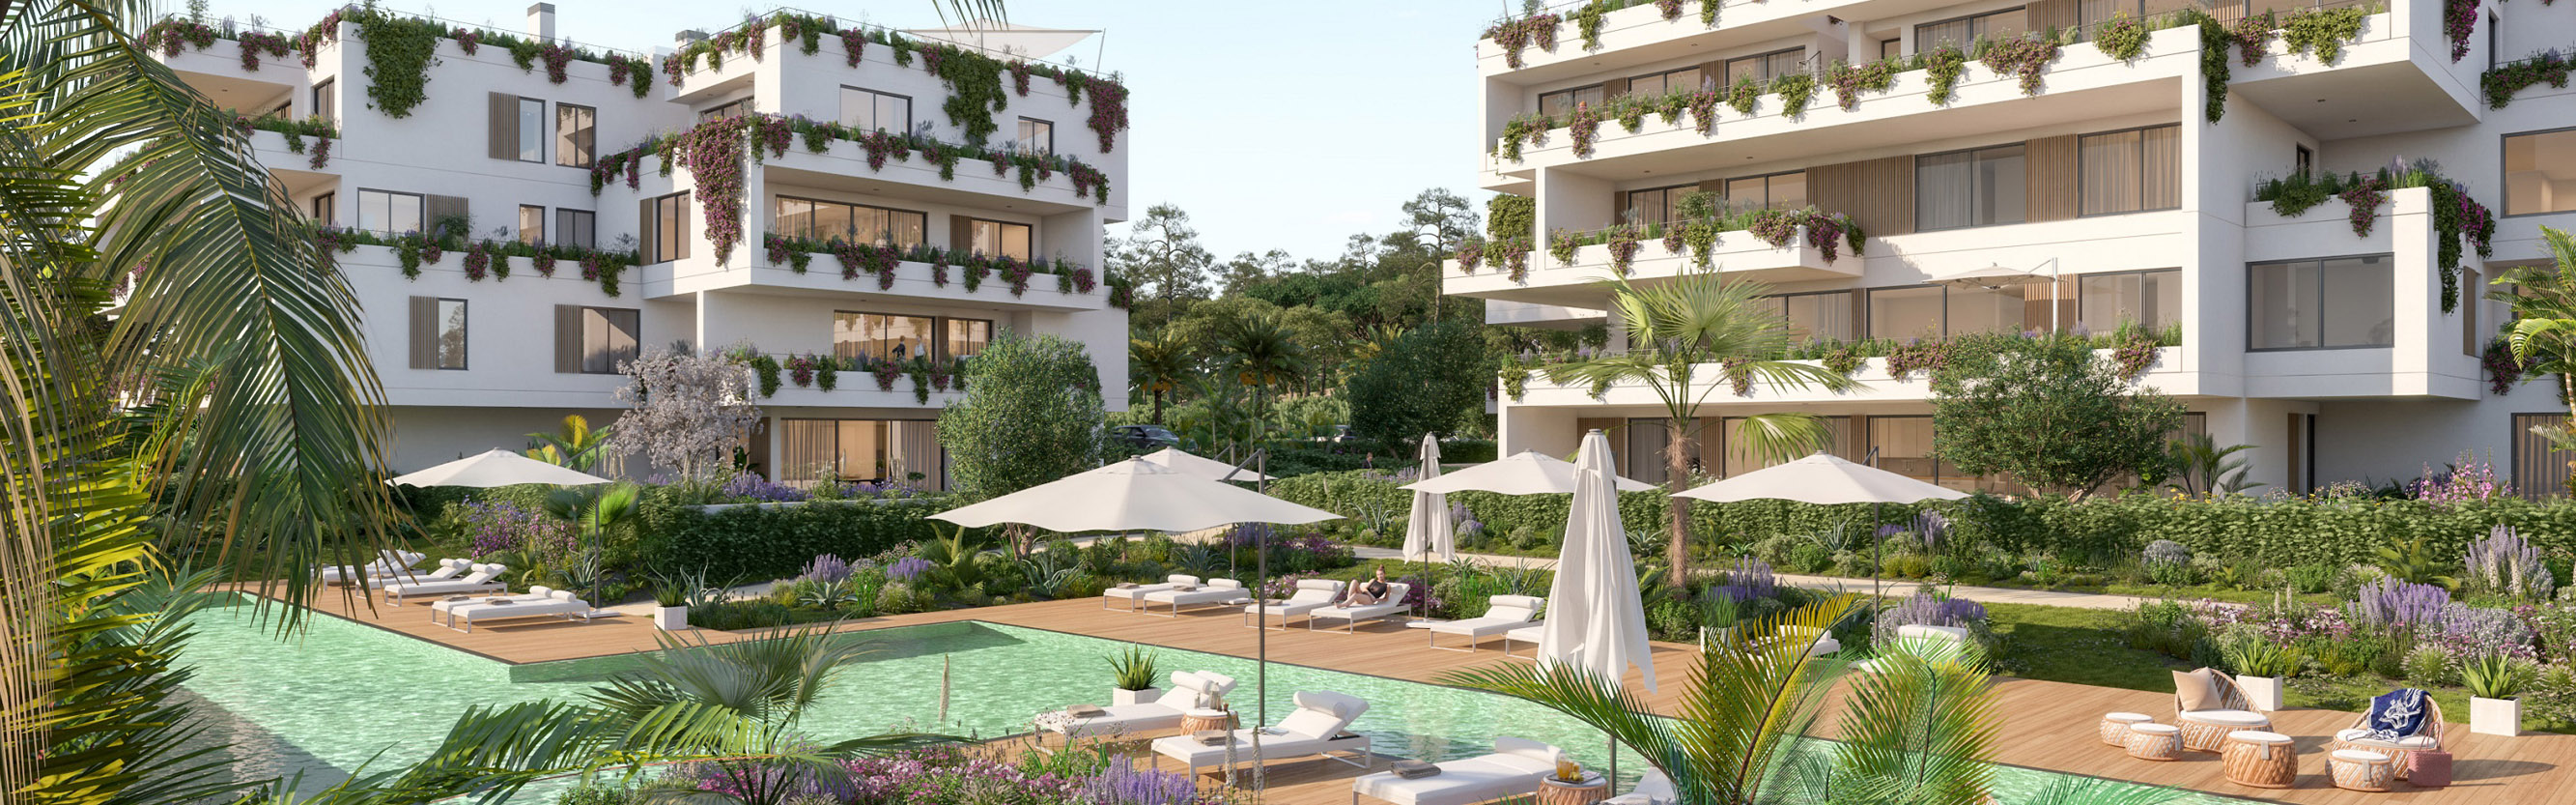 Balearen, Spanien - GREEN ELEMENTS - Apartment project in Nova Santa Ponsa, Mallorca